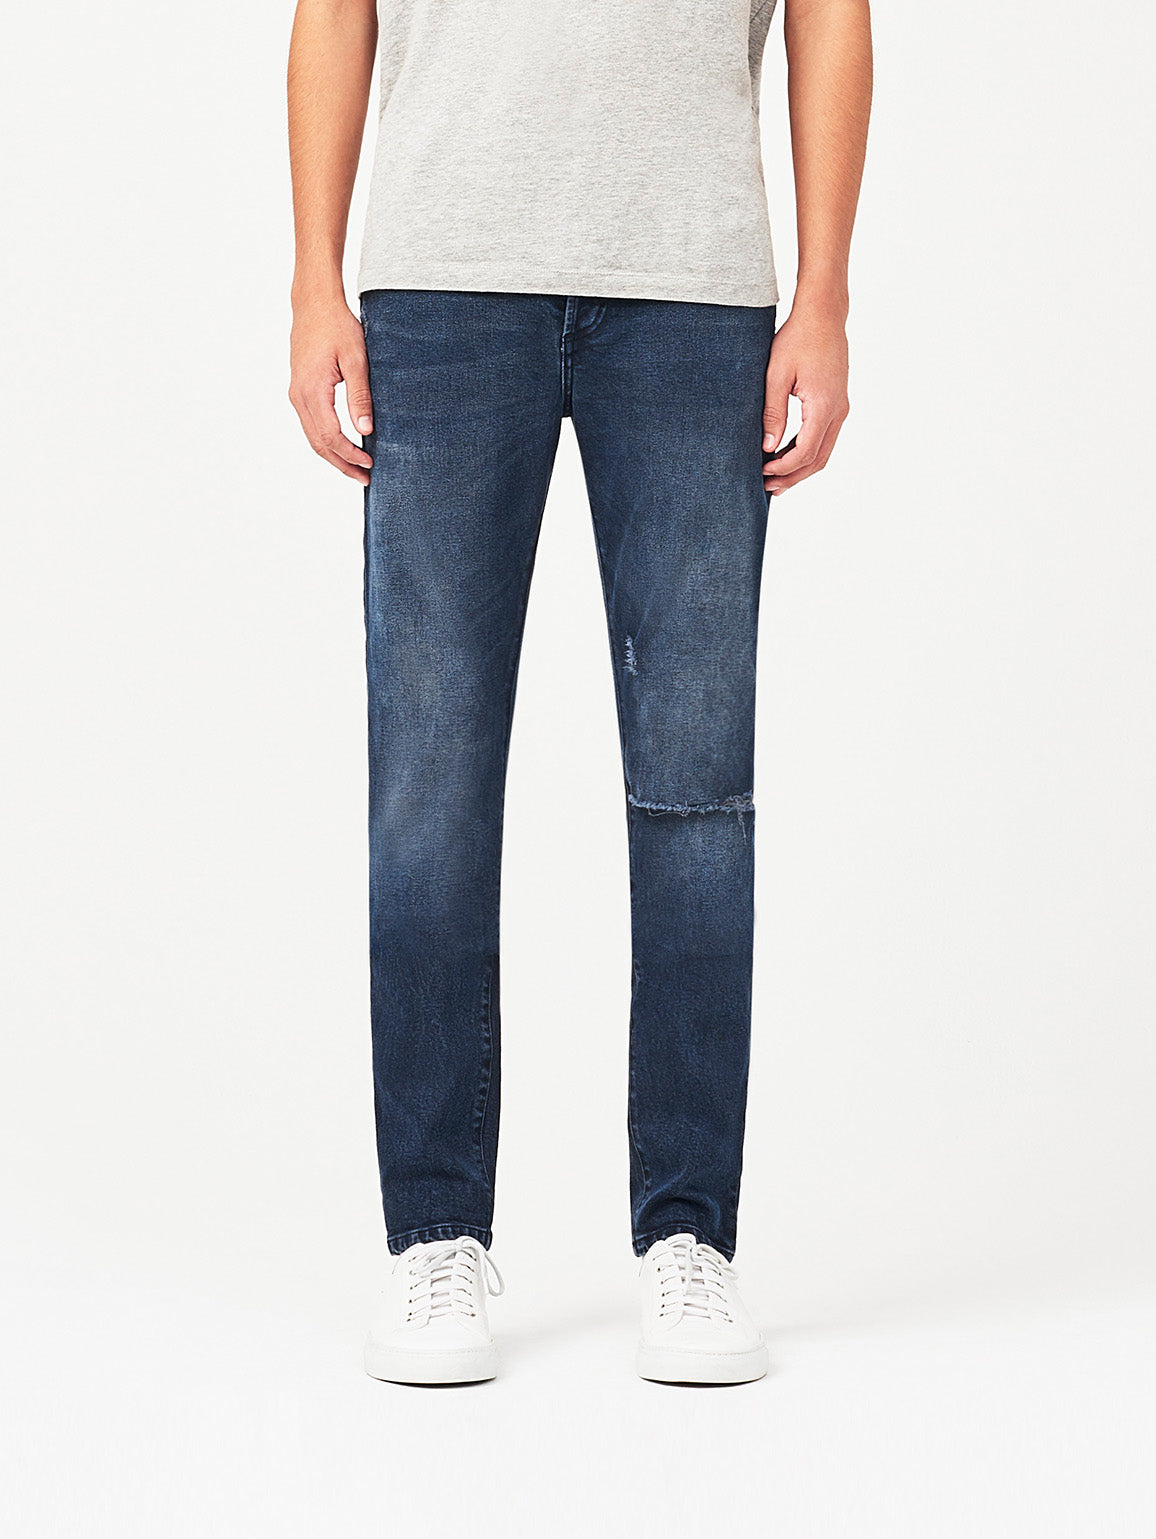 Hunter Skinny | Output DL 1961 Denim